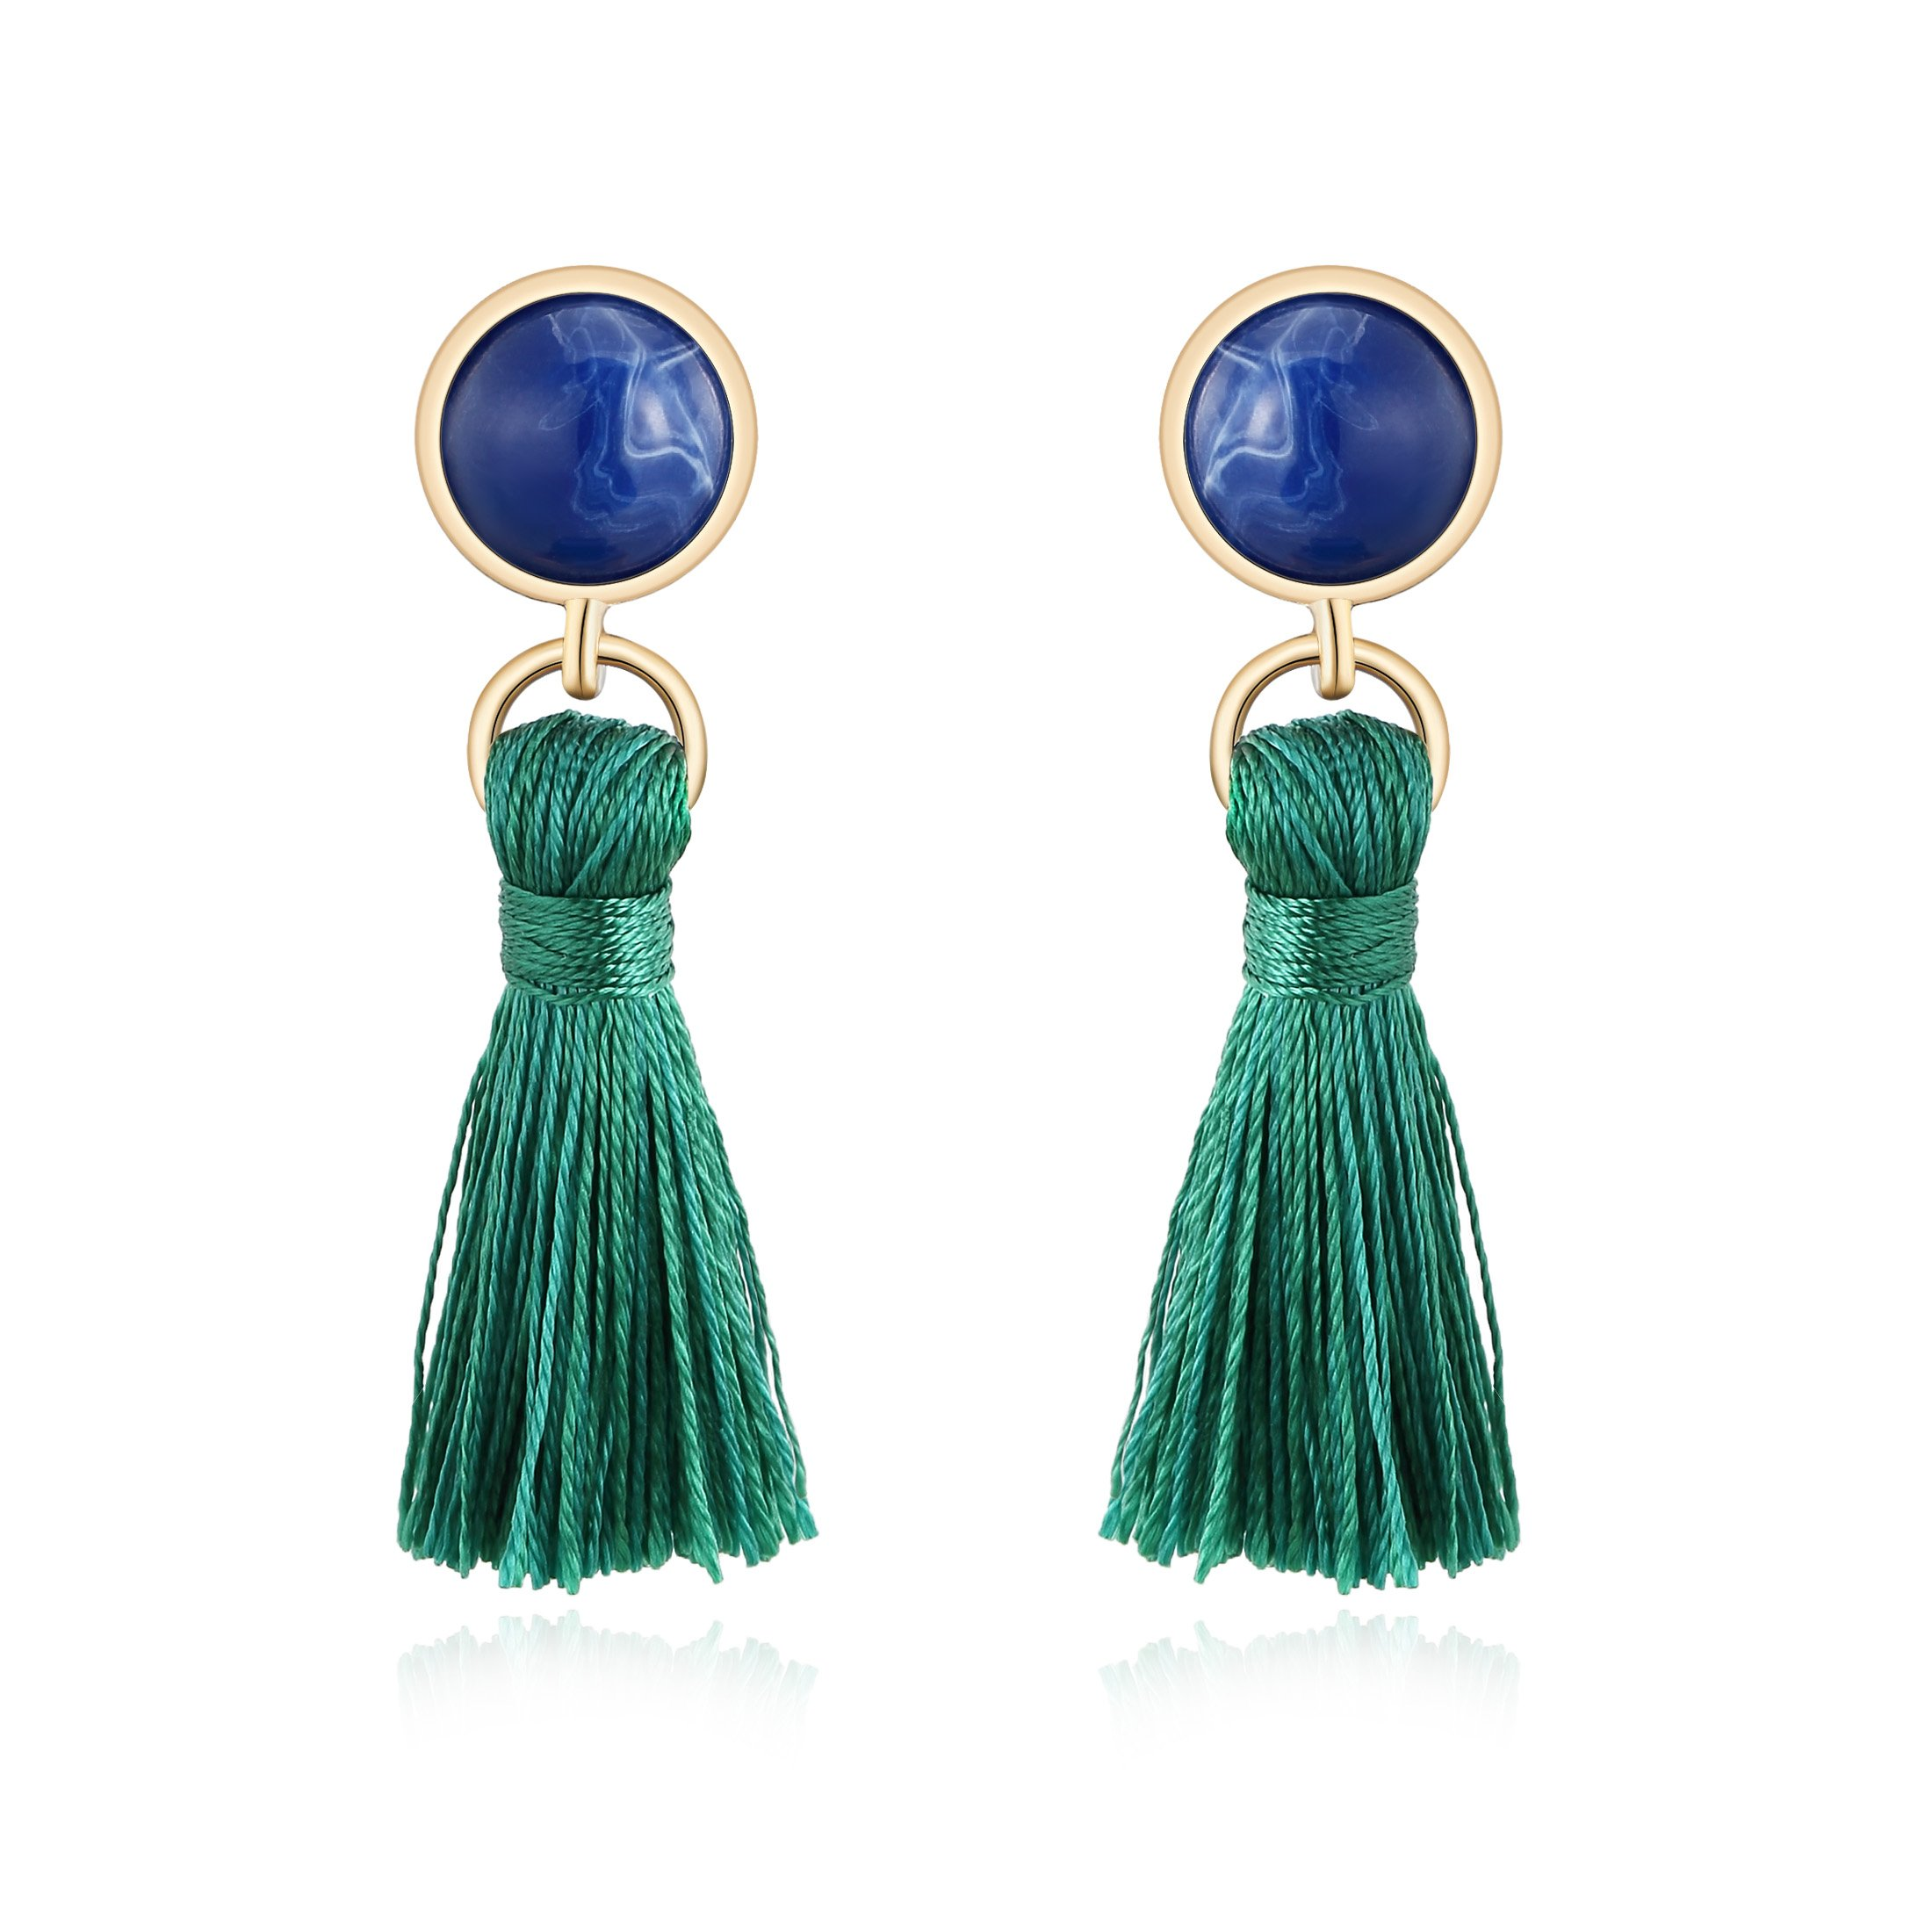 Ellena Rose Colorful Everyday Tassel Earrings, Statement Boho Drop Earrings for Women, Colorful Summer Colors to Help Your Outfit Pop (Blue and Green)